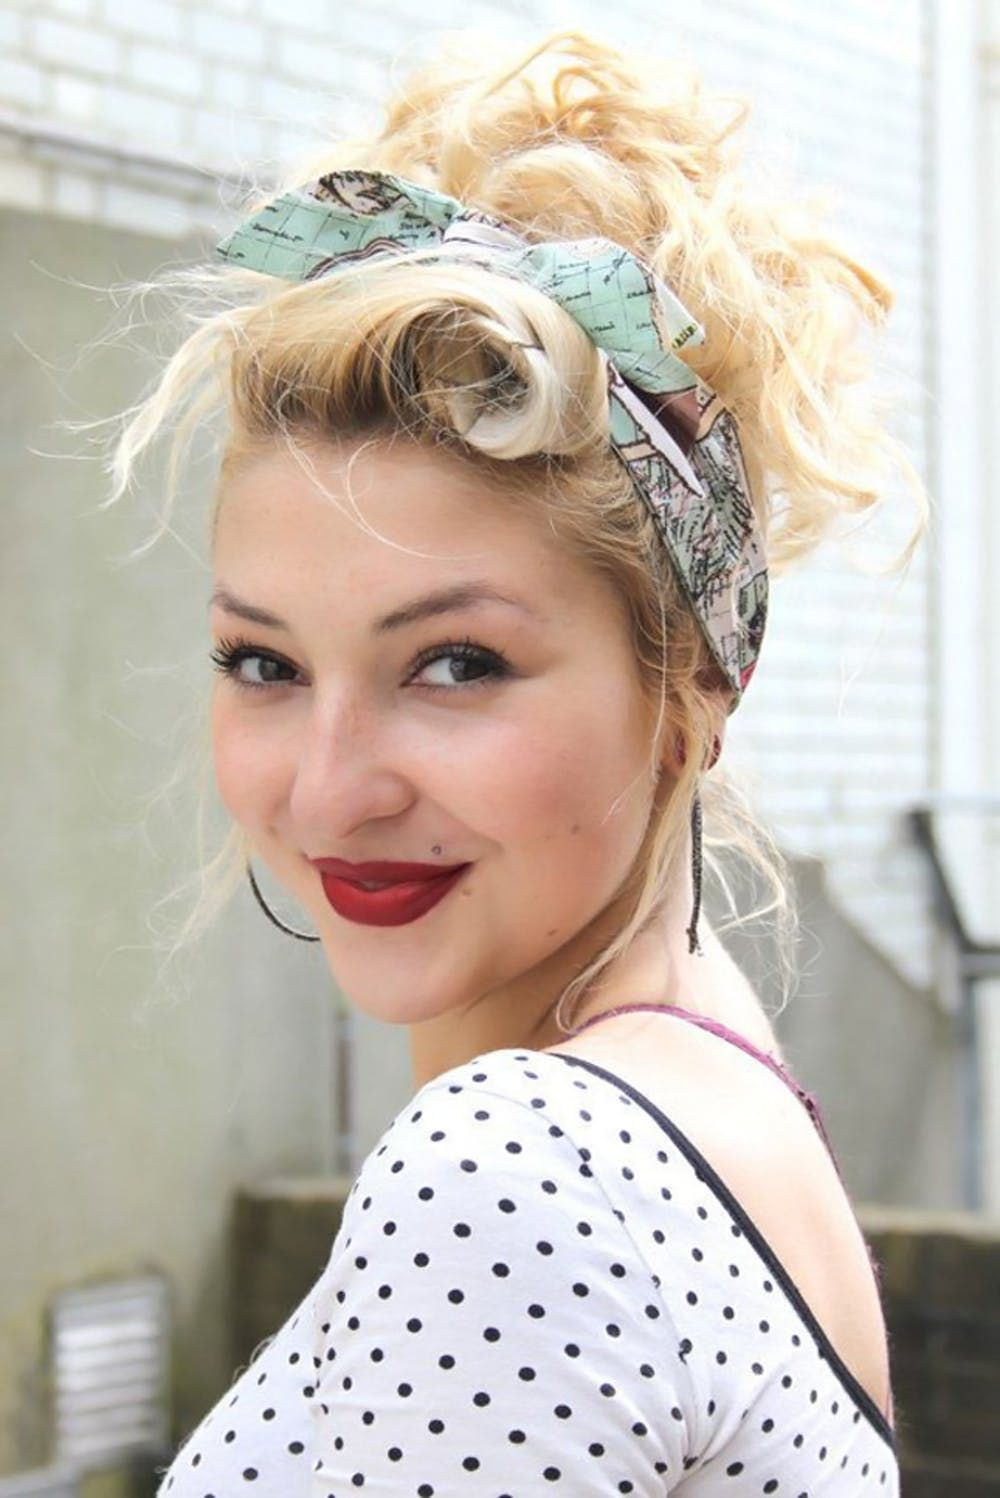 10 Lazygirl Hairstyles For Chic Vacation Hair Retro Hairstyles Scarf Hairstyles Chic Hairstyles